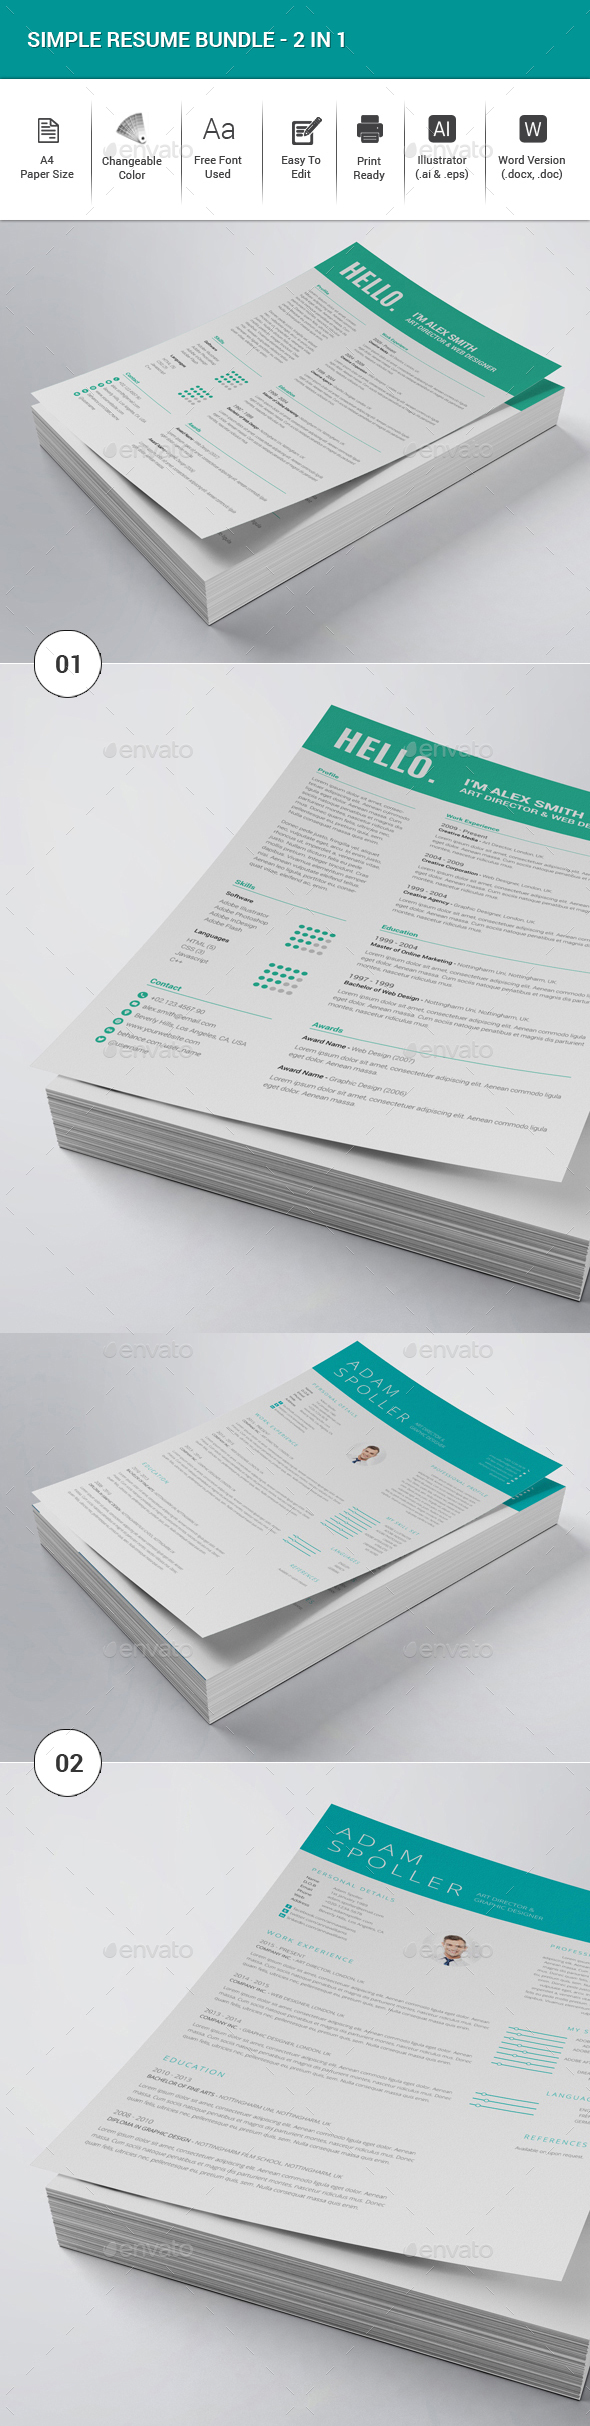 Simple Resume Bundle - 2in1 - Resumes Stationery